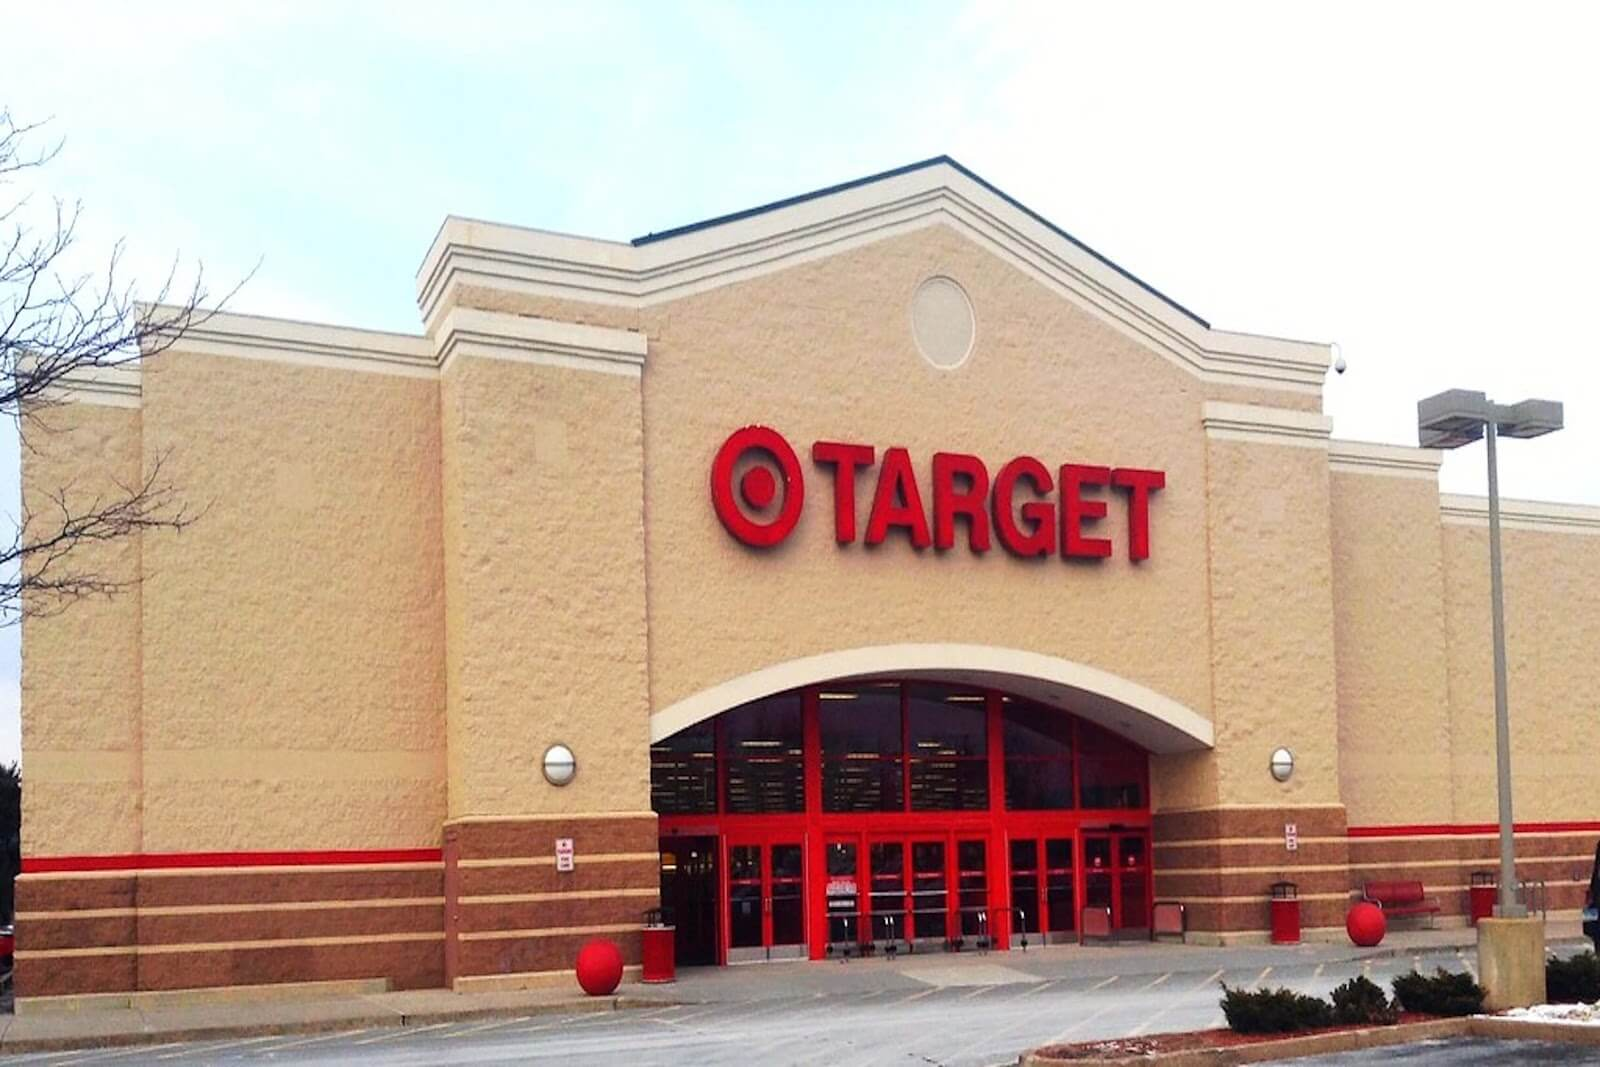 Target Cuts Hours After Raising Hourly Pay, Workers Complain Image